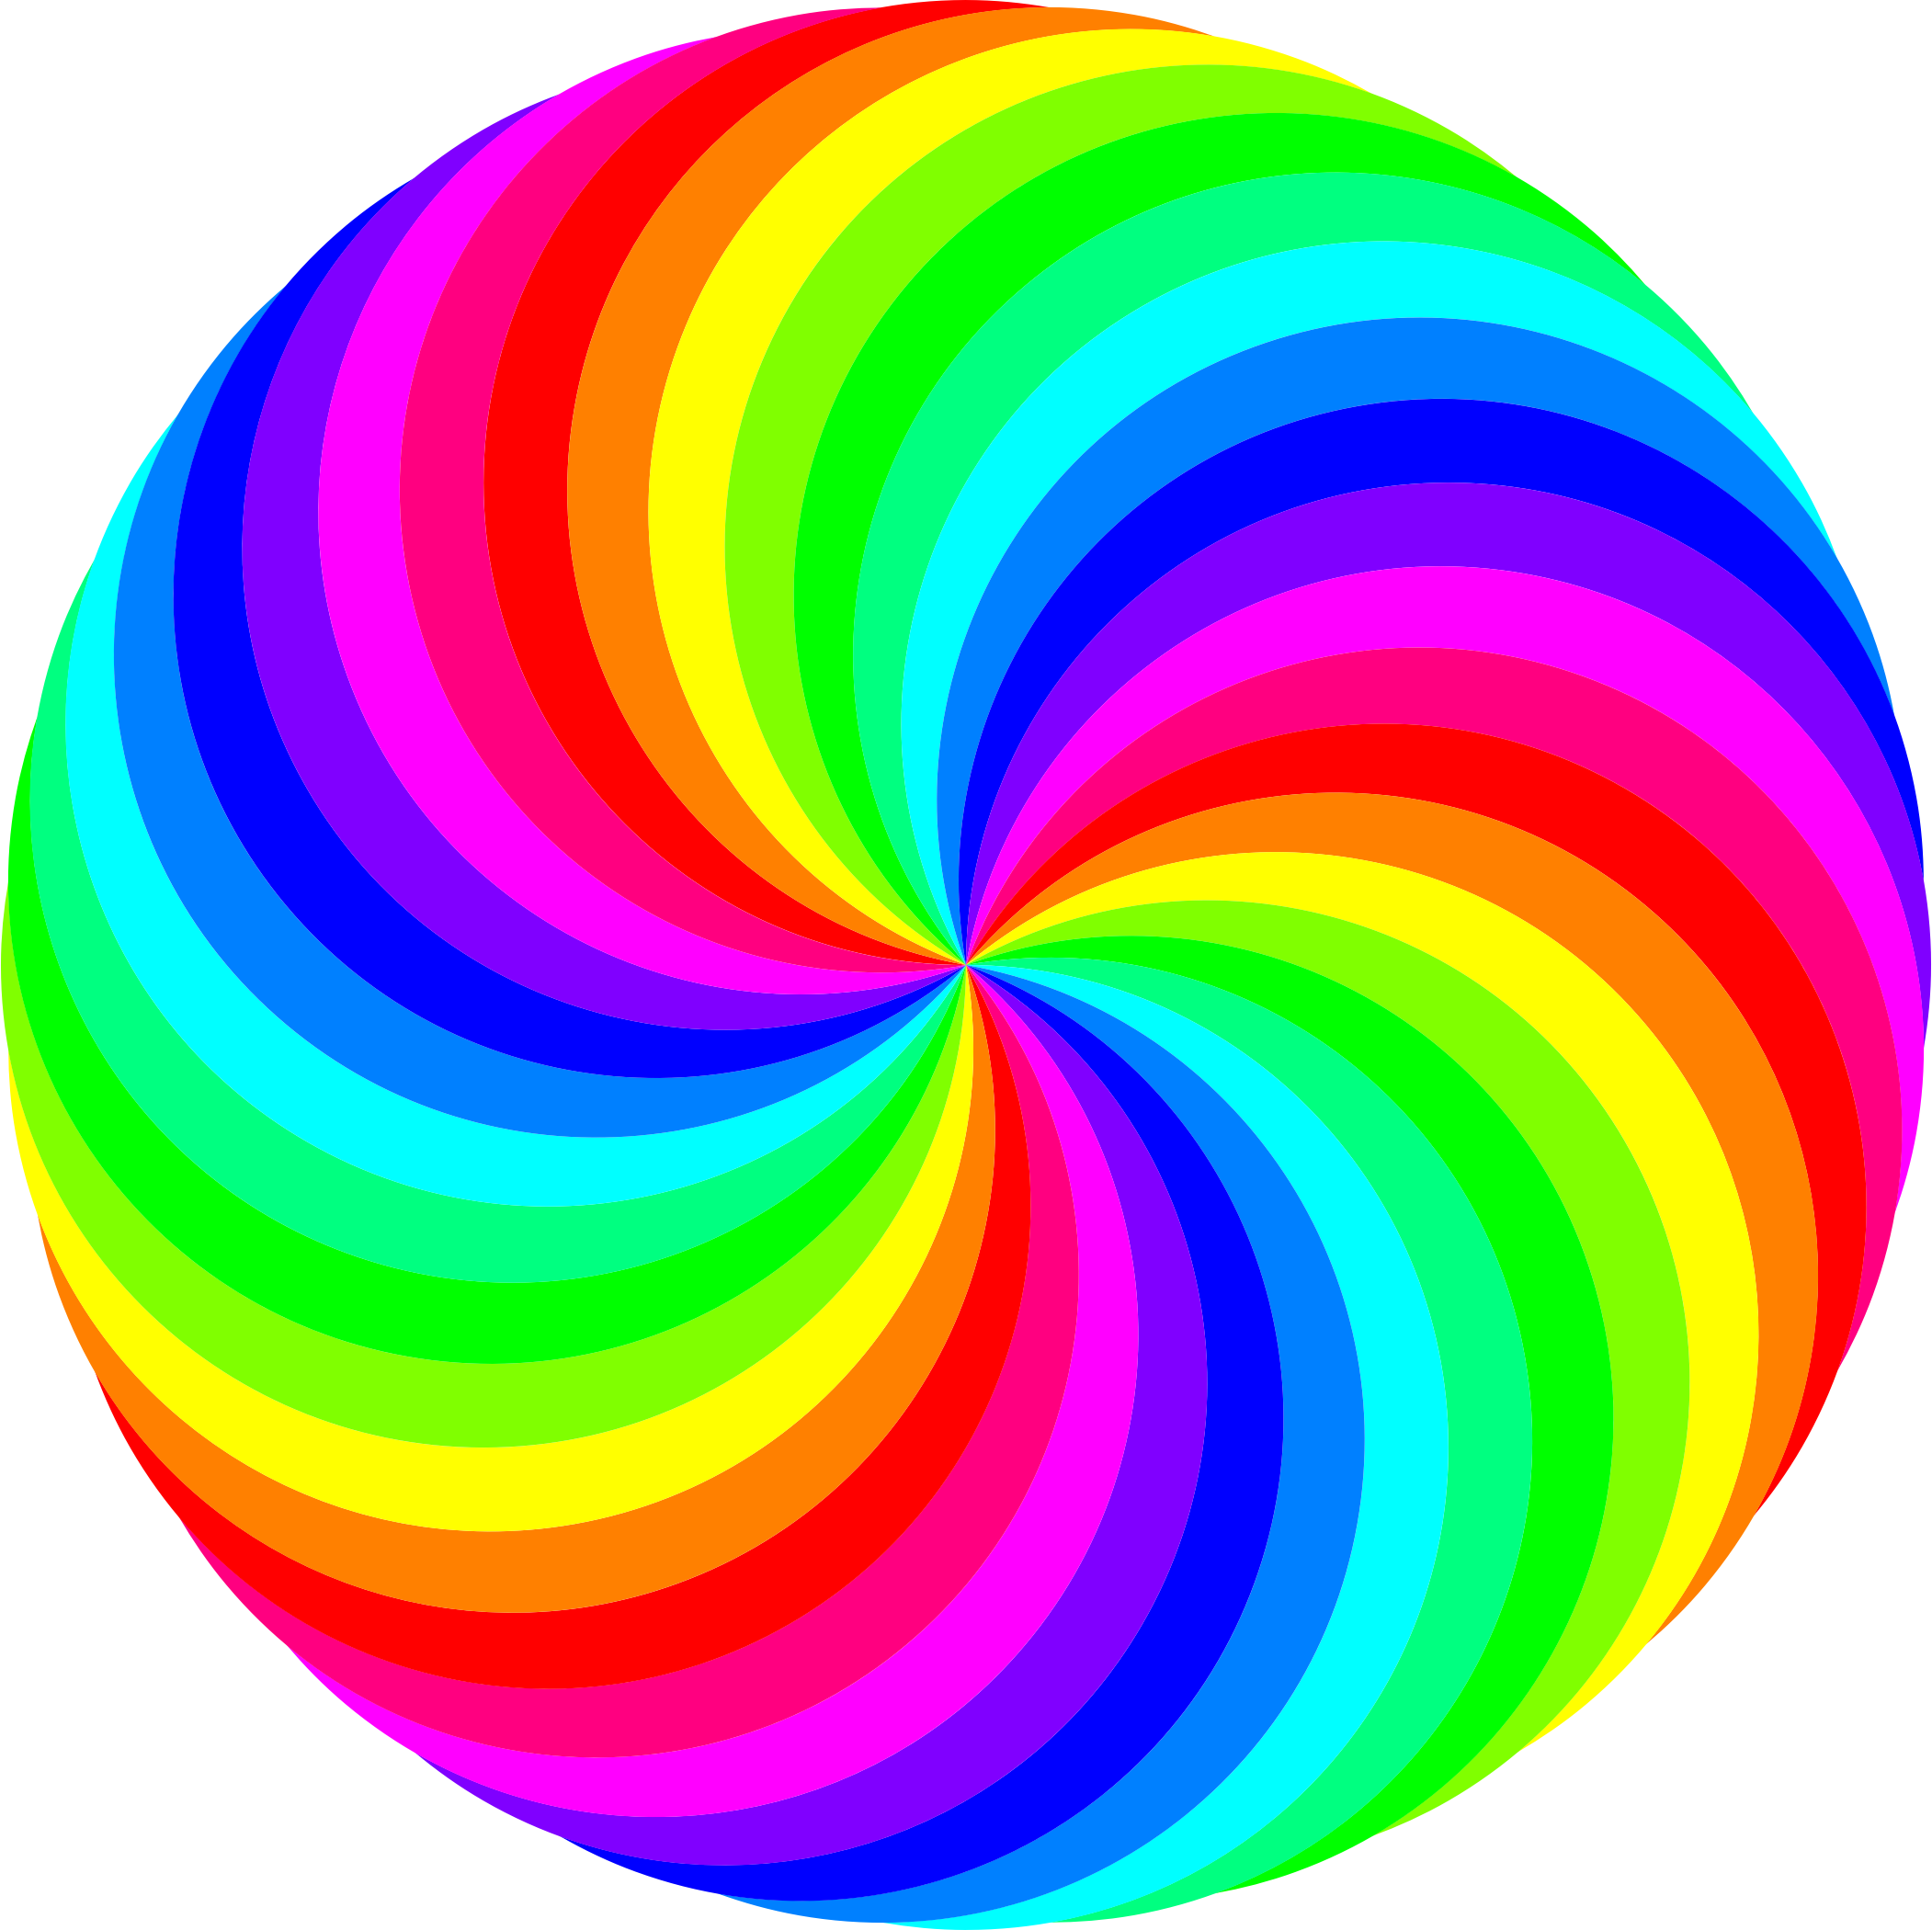 Transparent spiral colorful. Circle swirl color